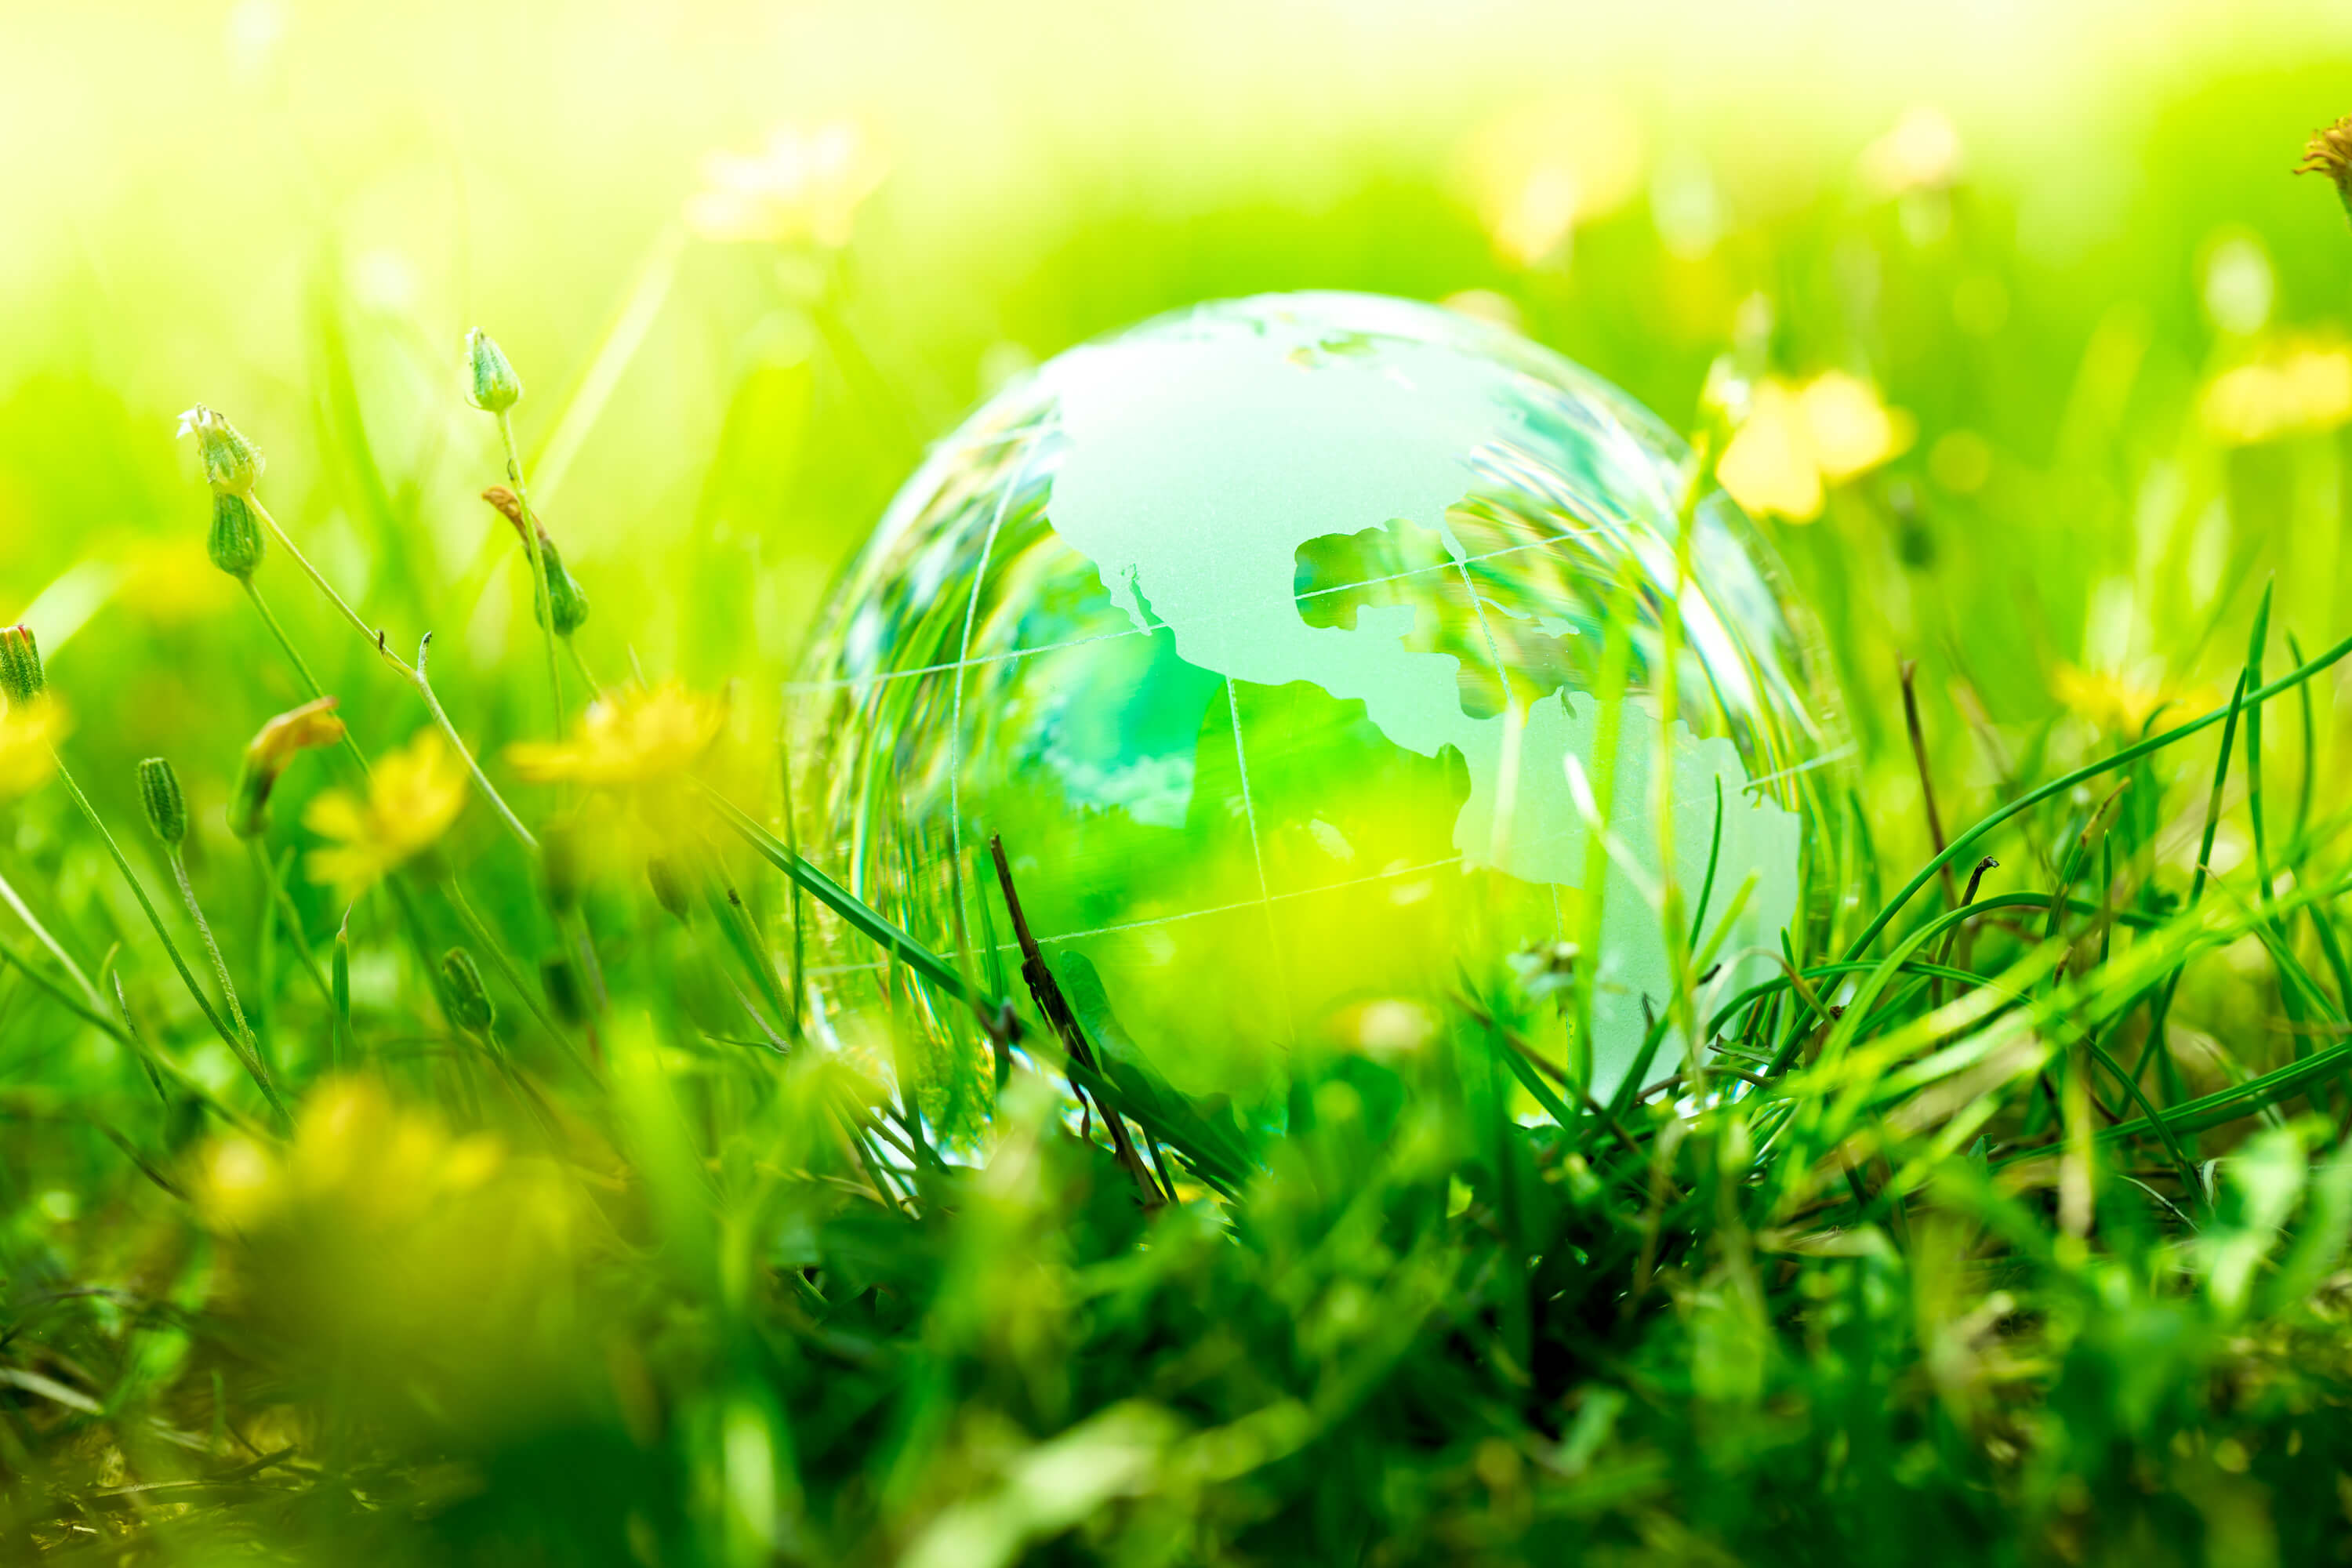 Green Alert: The future of Real Estate towards a cleaner, greener environment